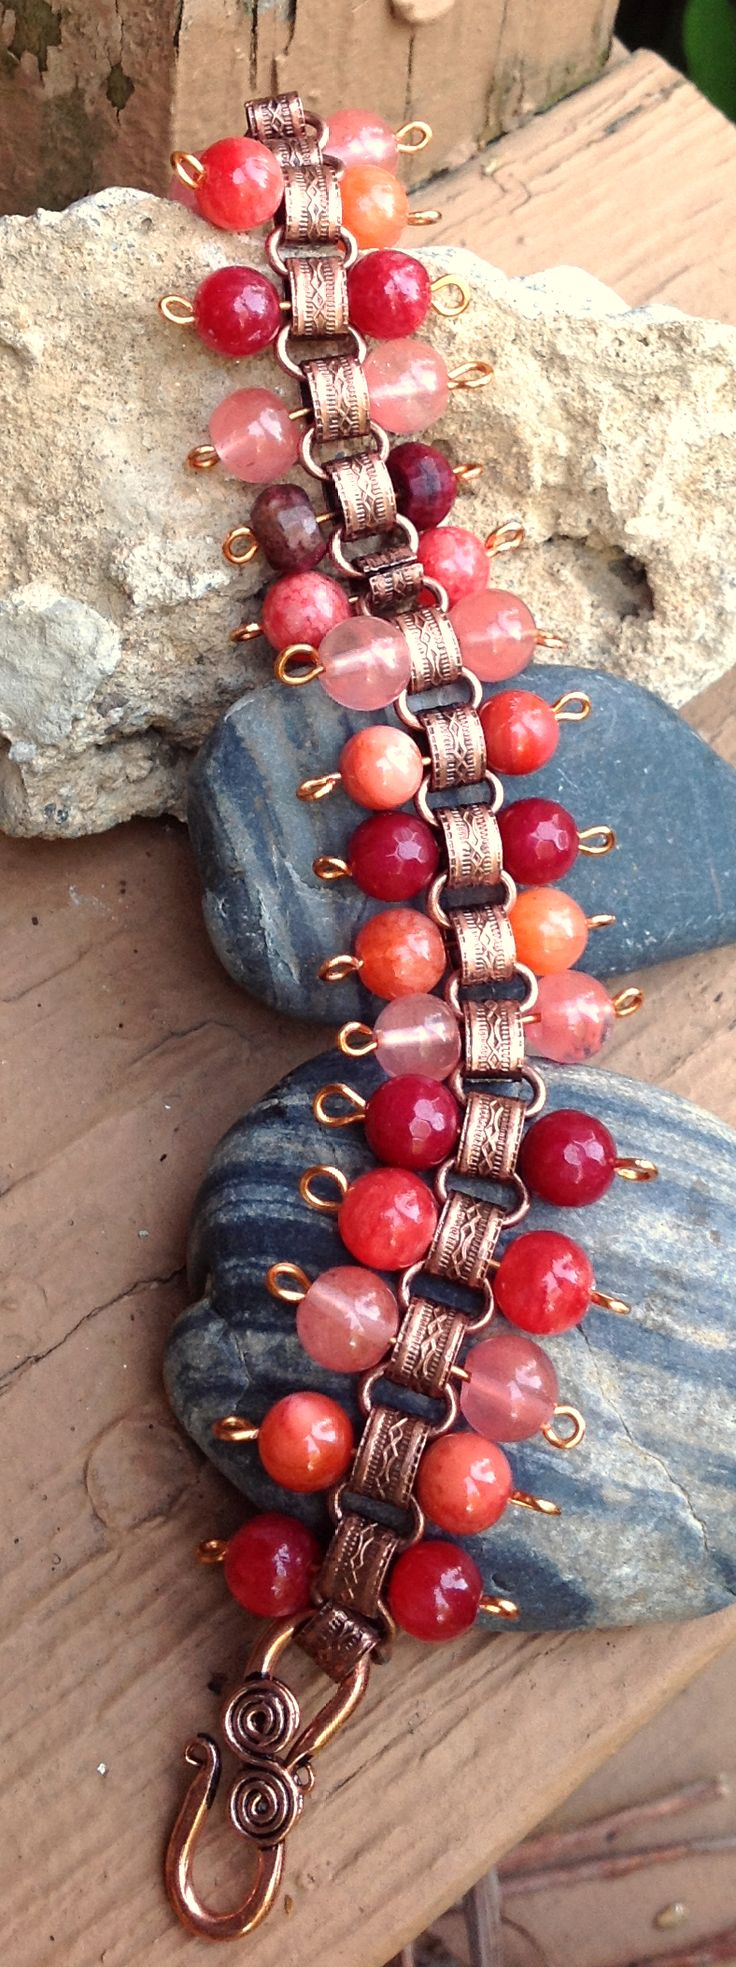 Bracelet with Peach, strawberry and merlot stones in copper. Stunning colored bracelet for late summer or fall.